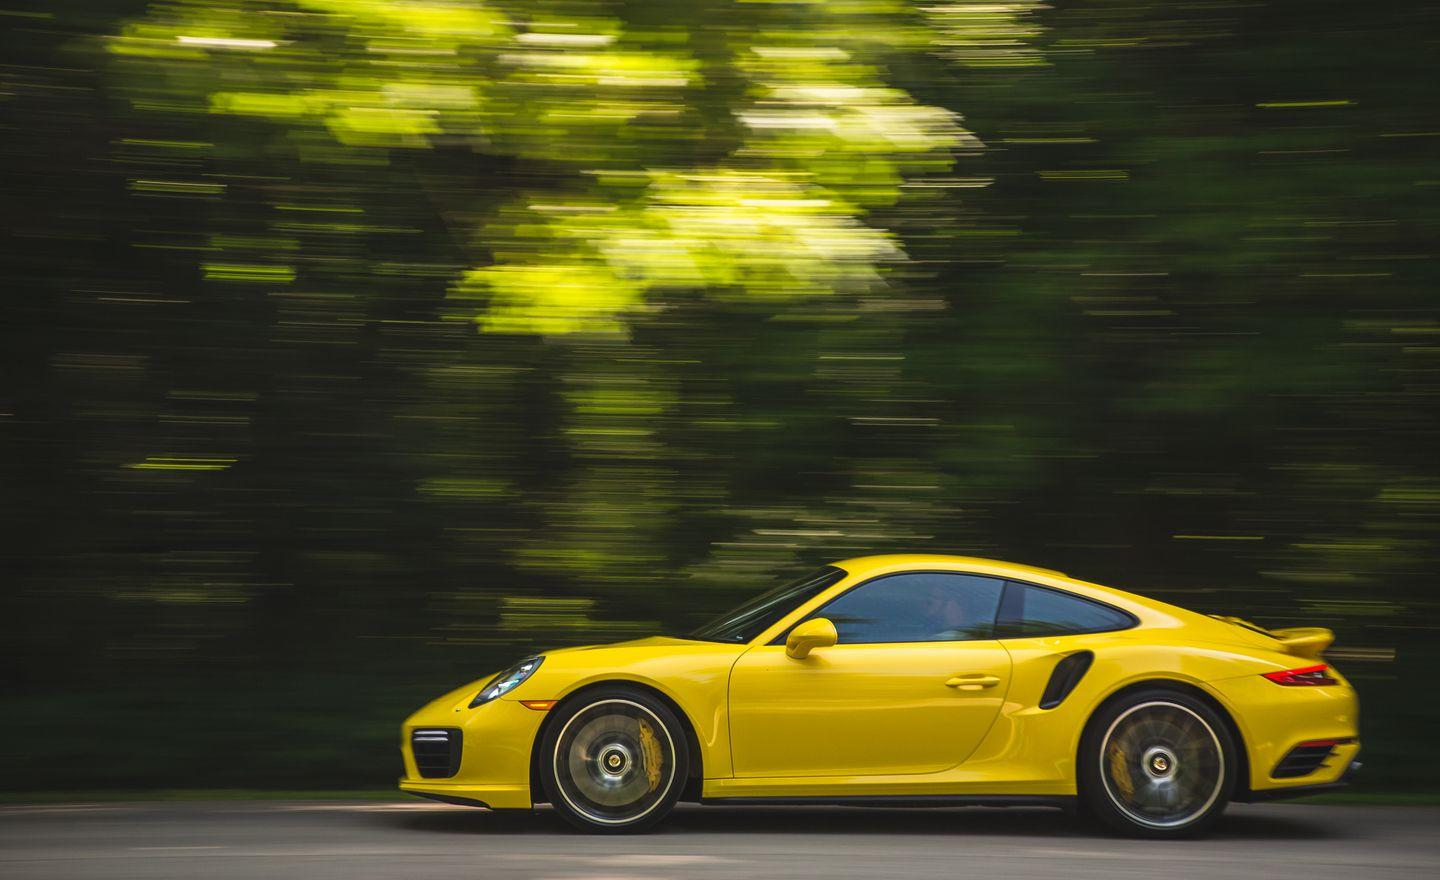 Every Angle of the 2018 Porsche 911 Turbo S